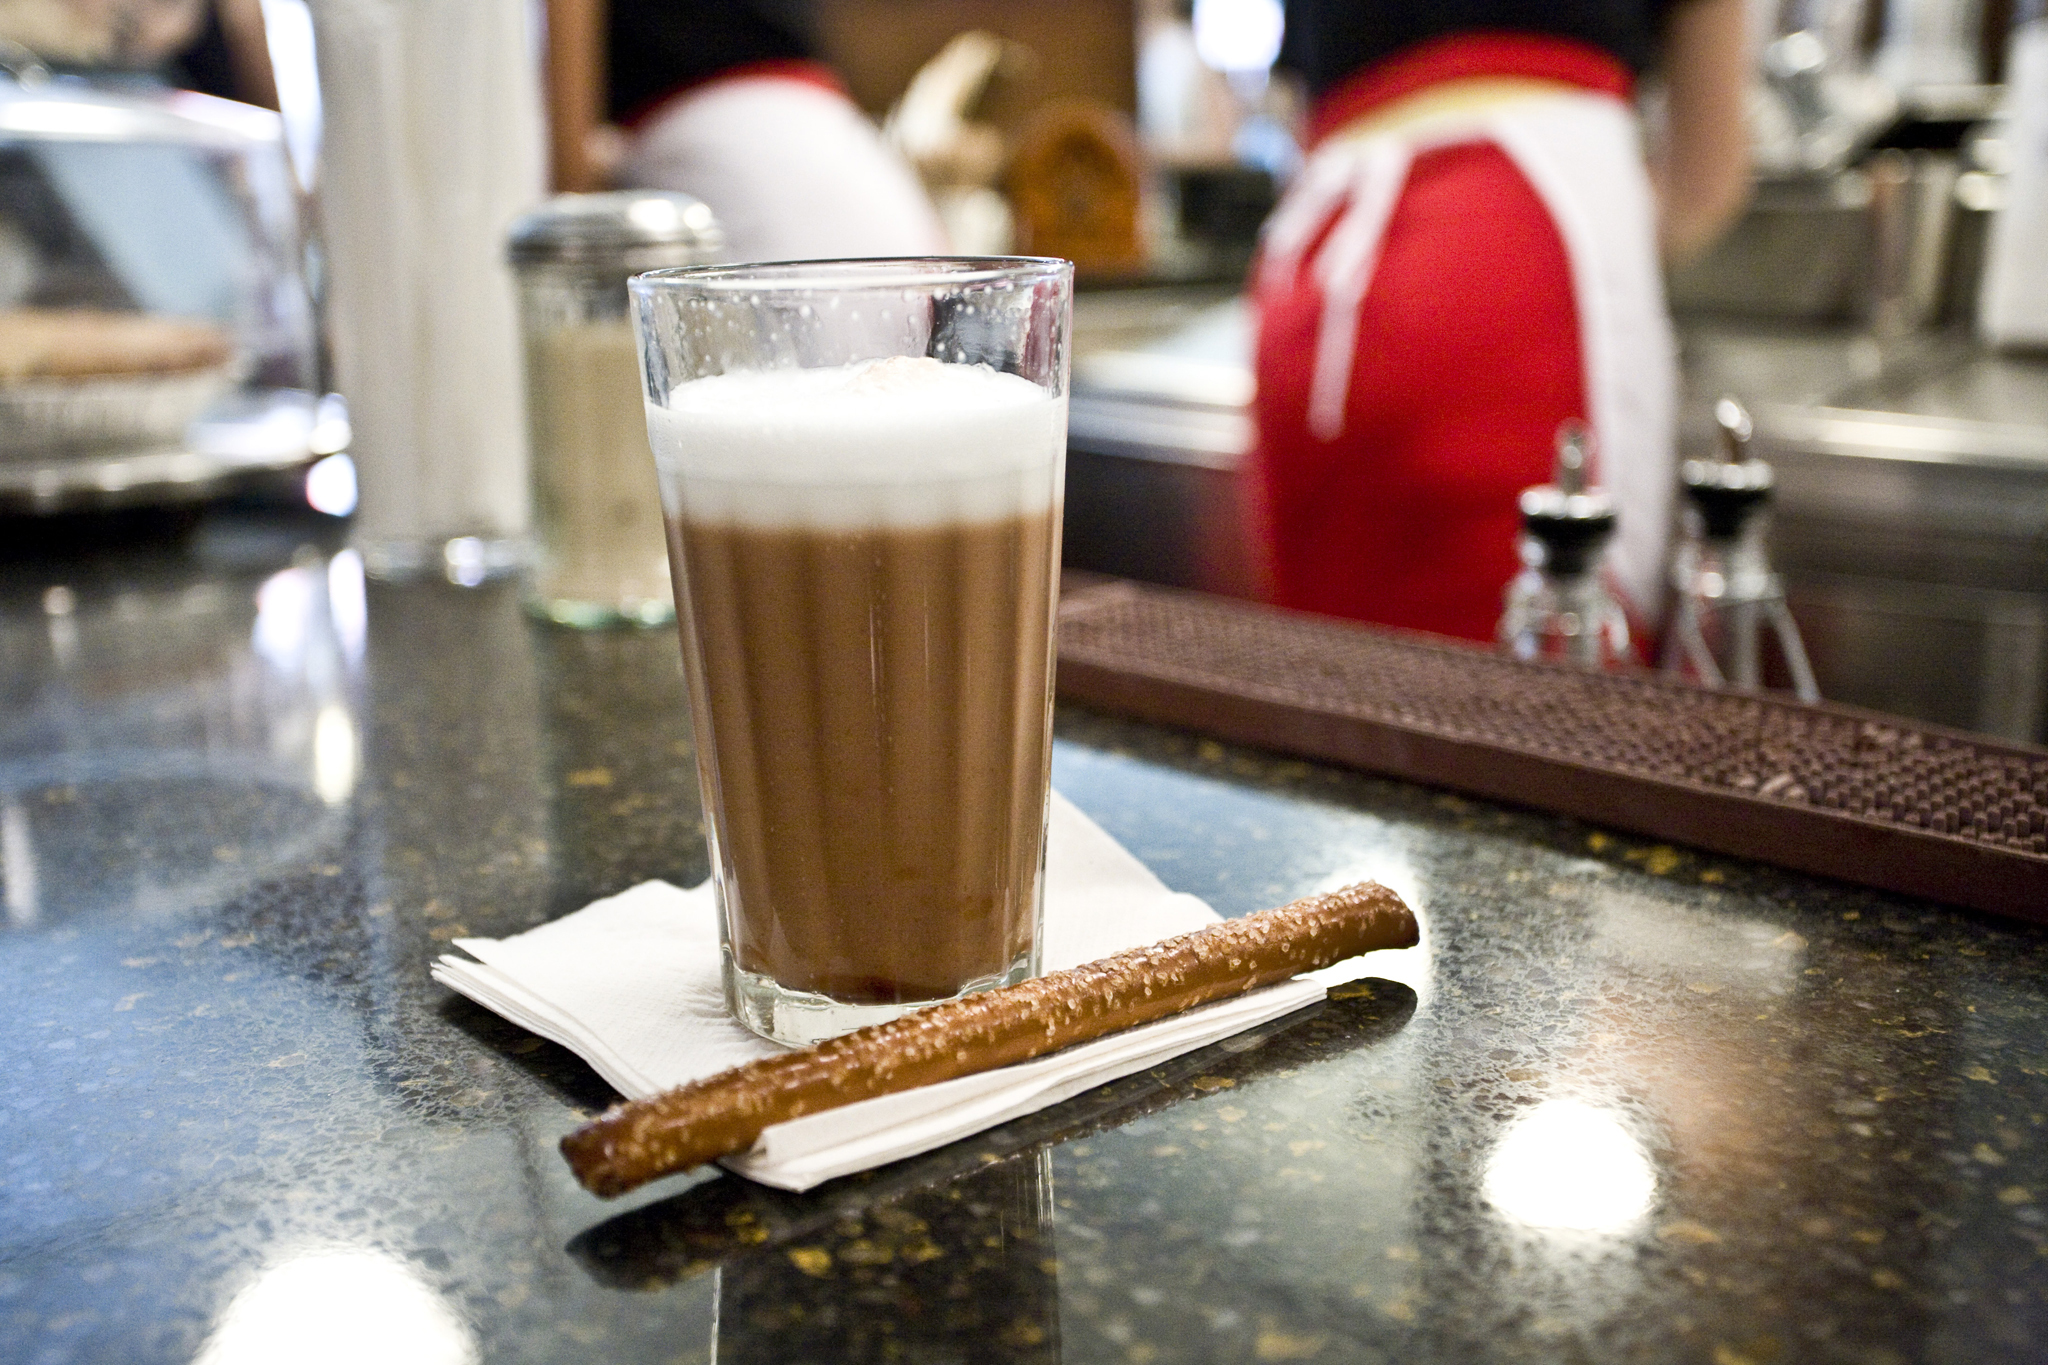 Sip an egg cream